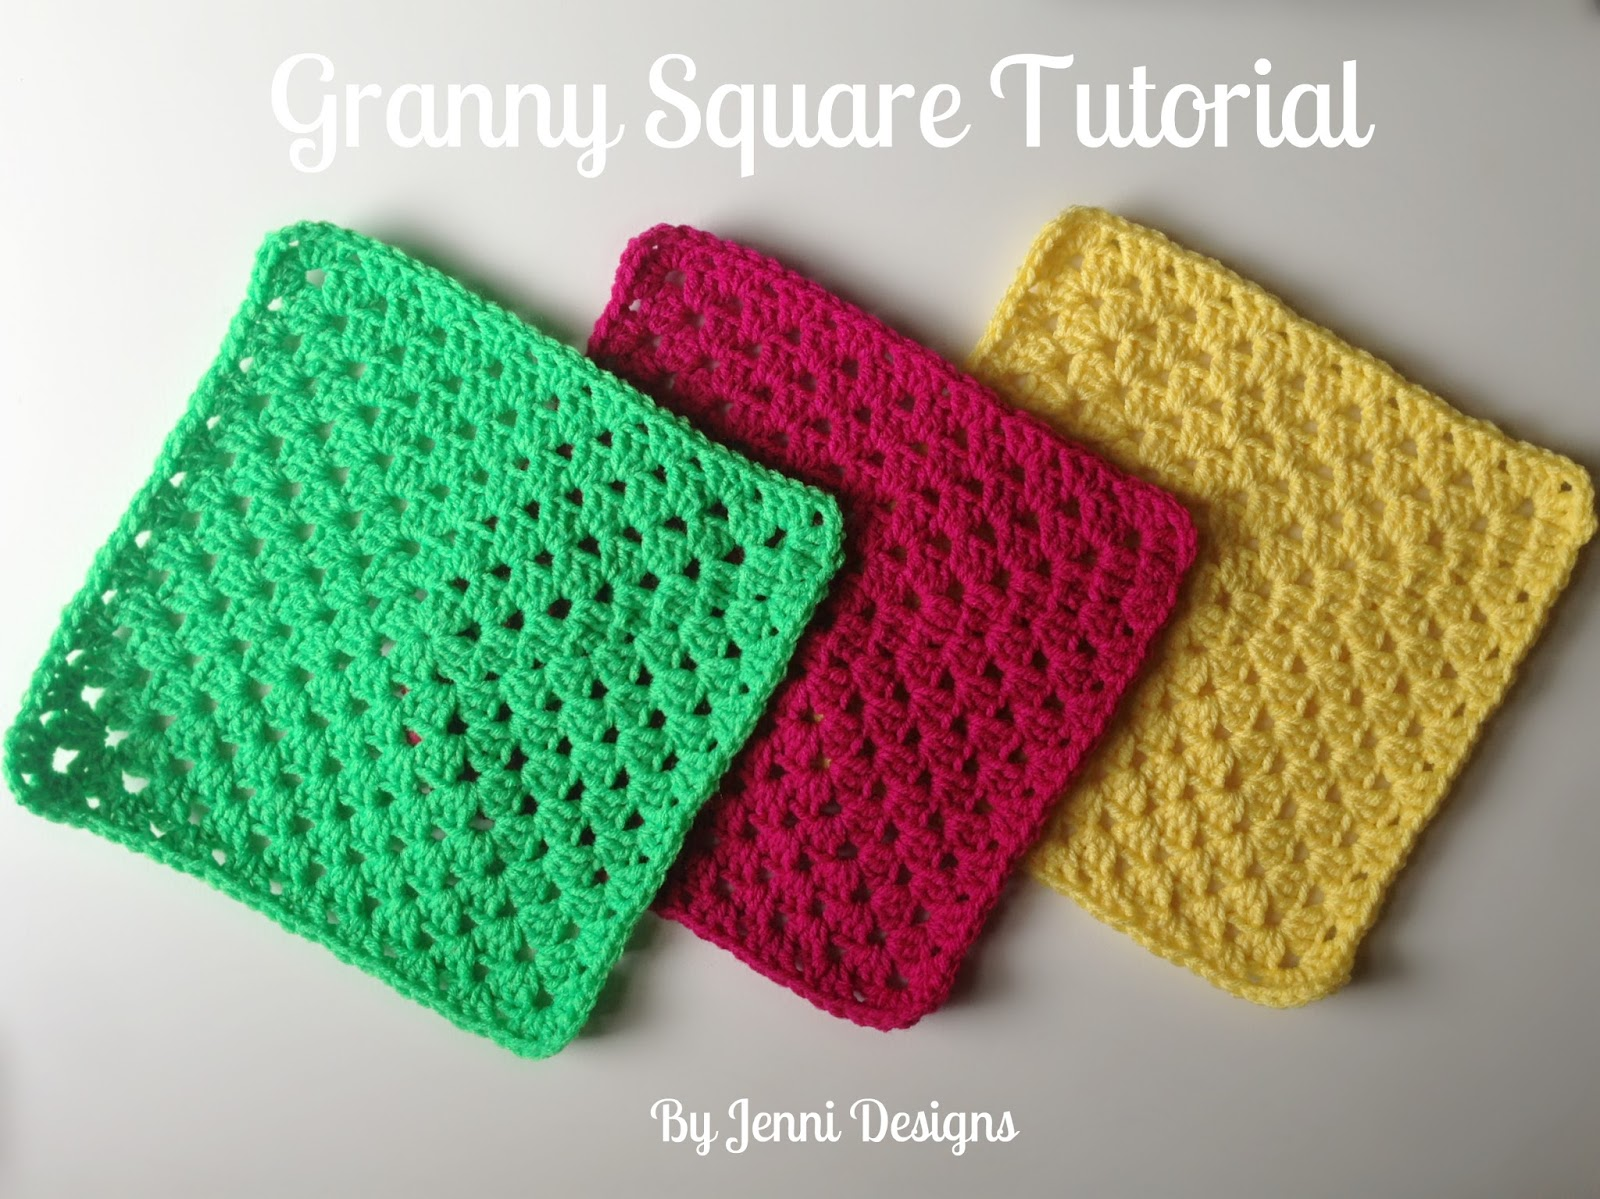 By jenni designs free crochet pattern tutorial granny square free crochet pattern tutorial granny square bankloansurffo Images